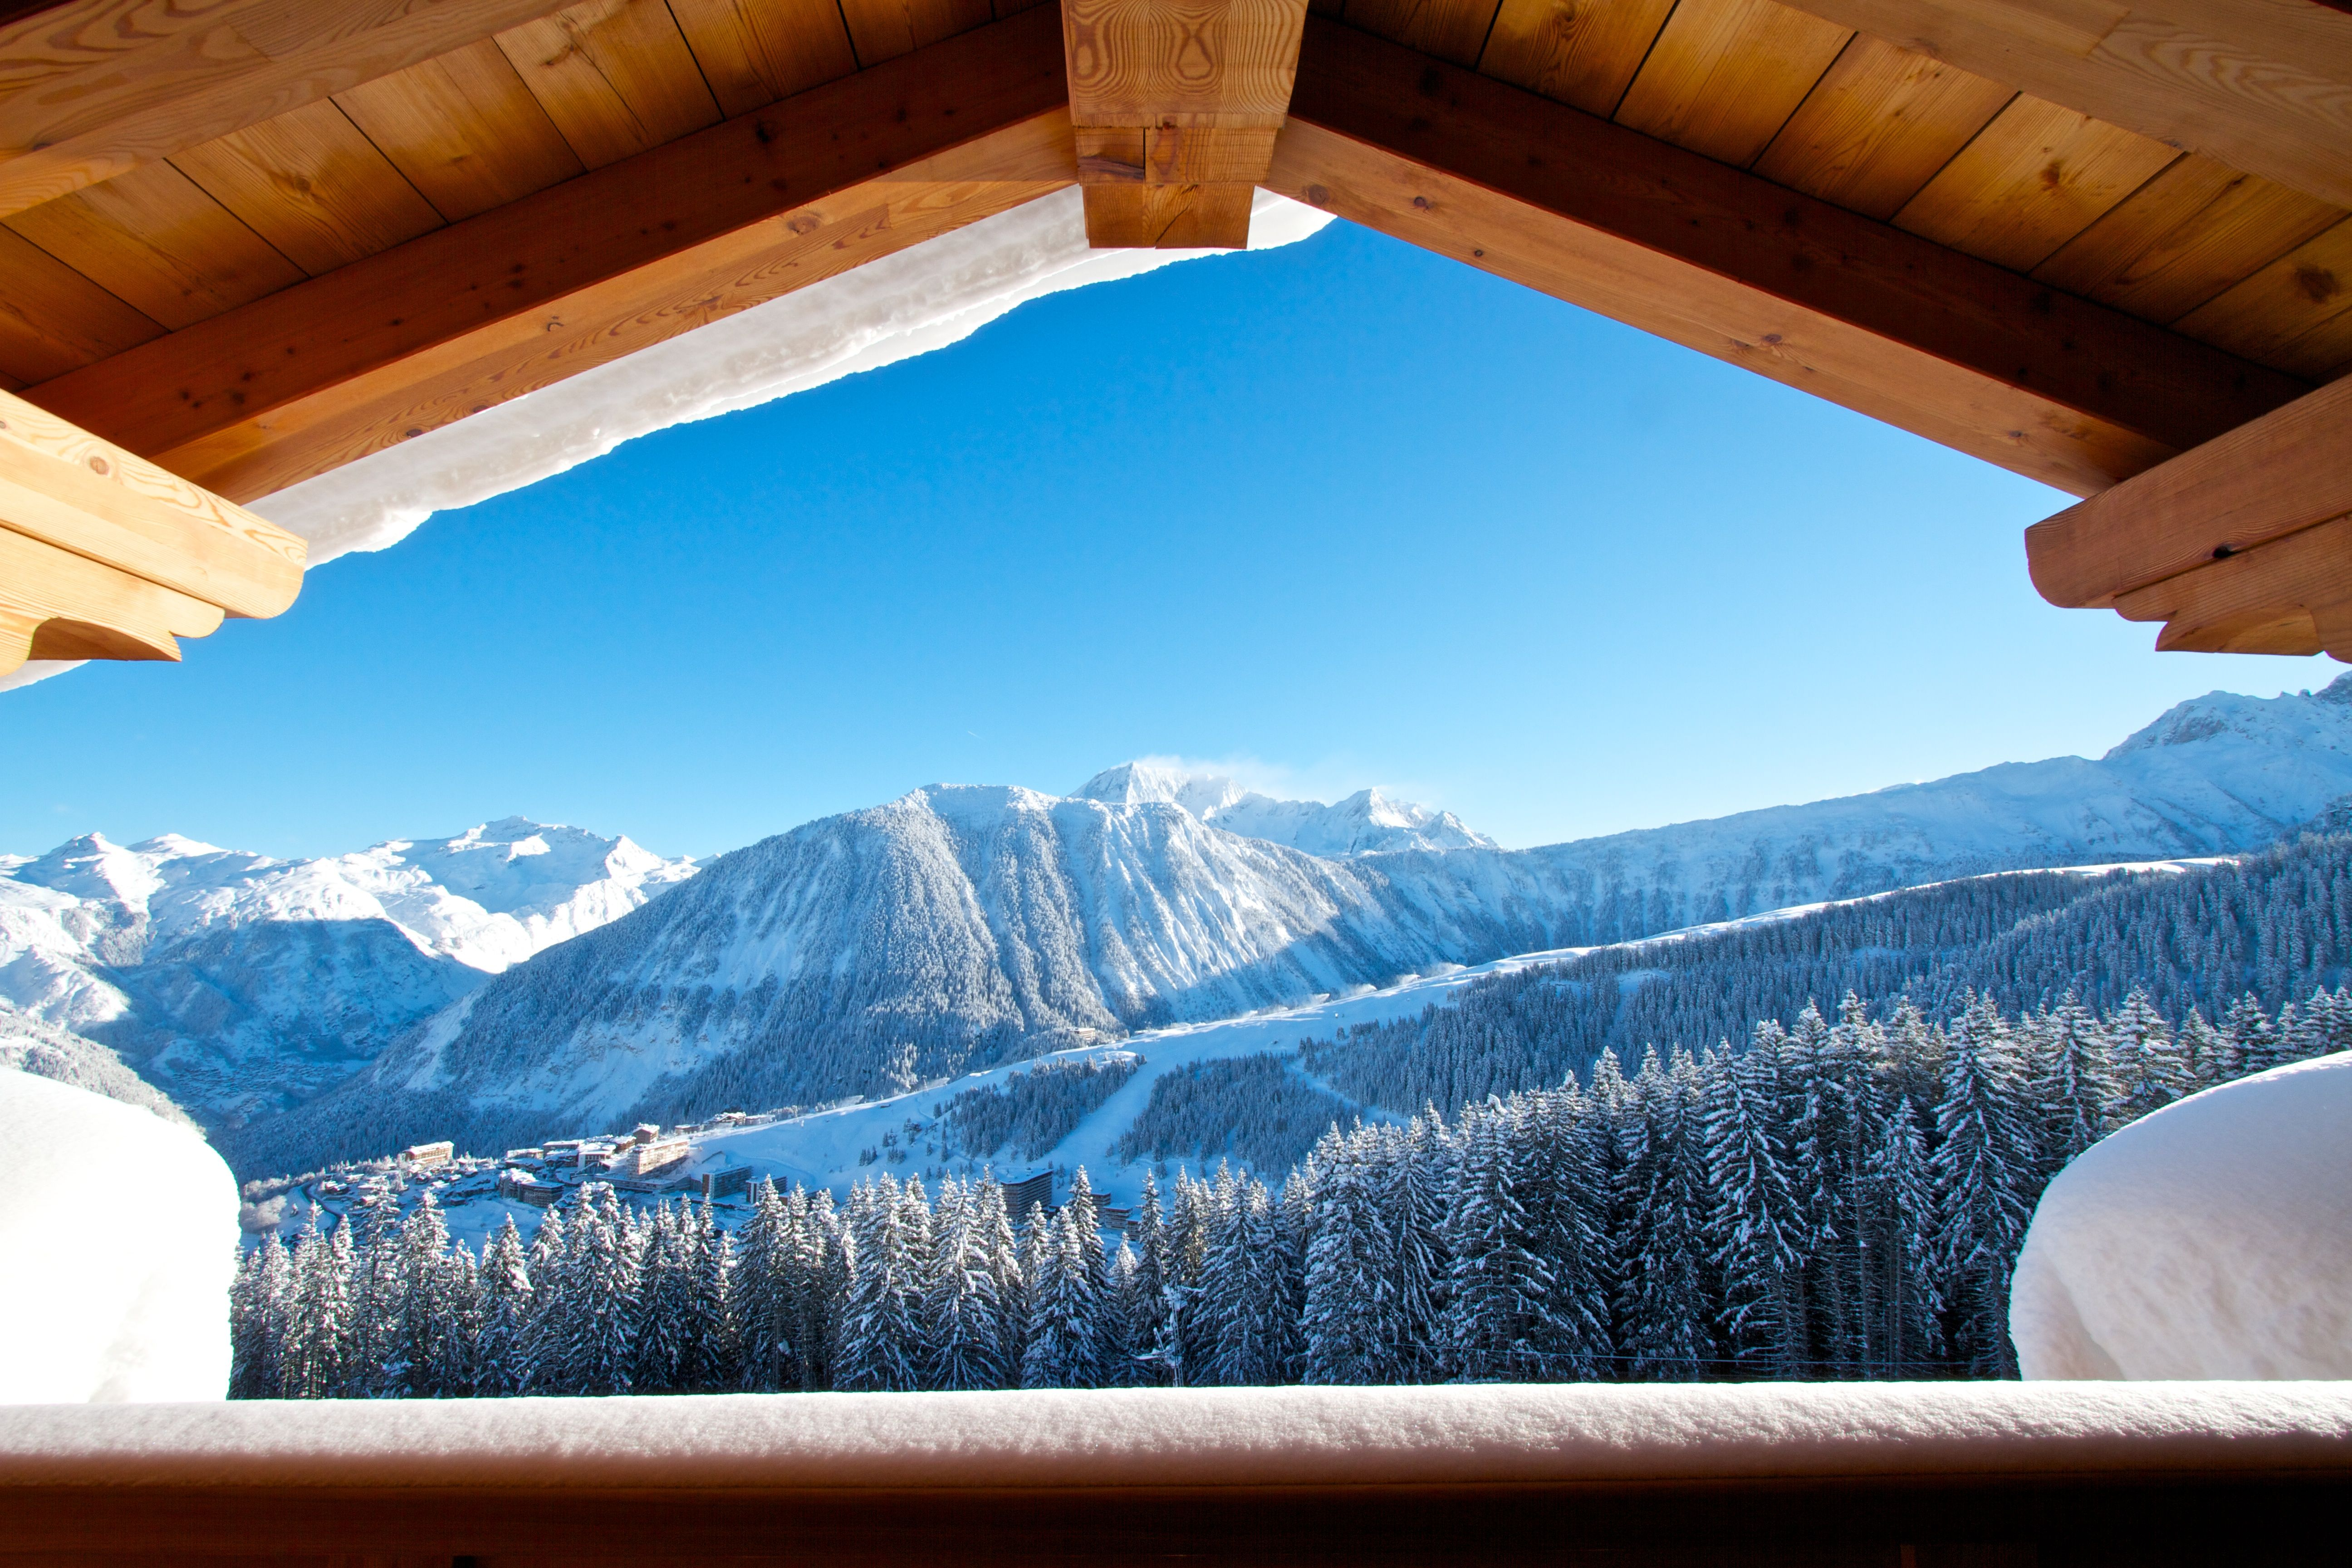 Courchevel is a ski resort in the French Alps, located in